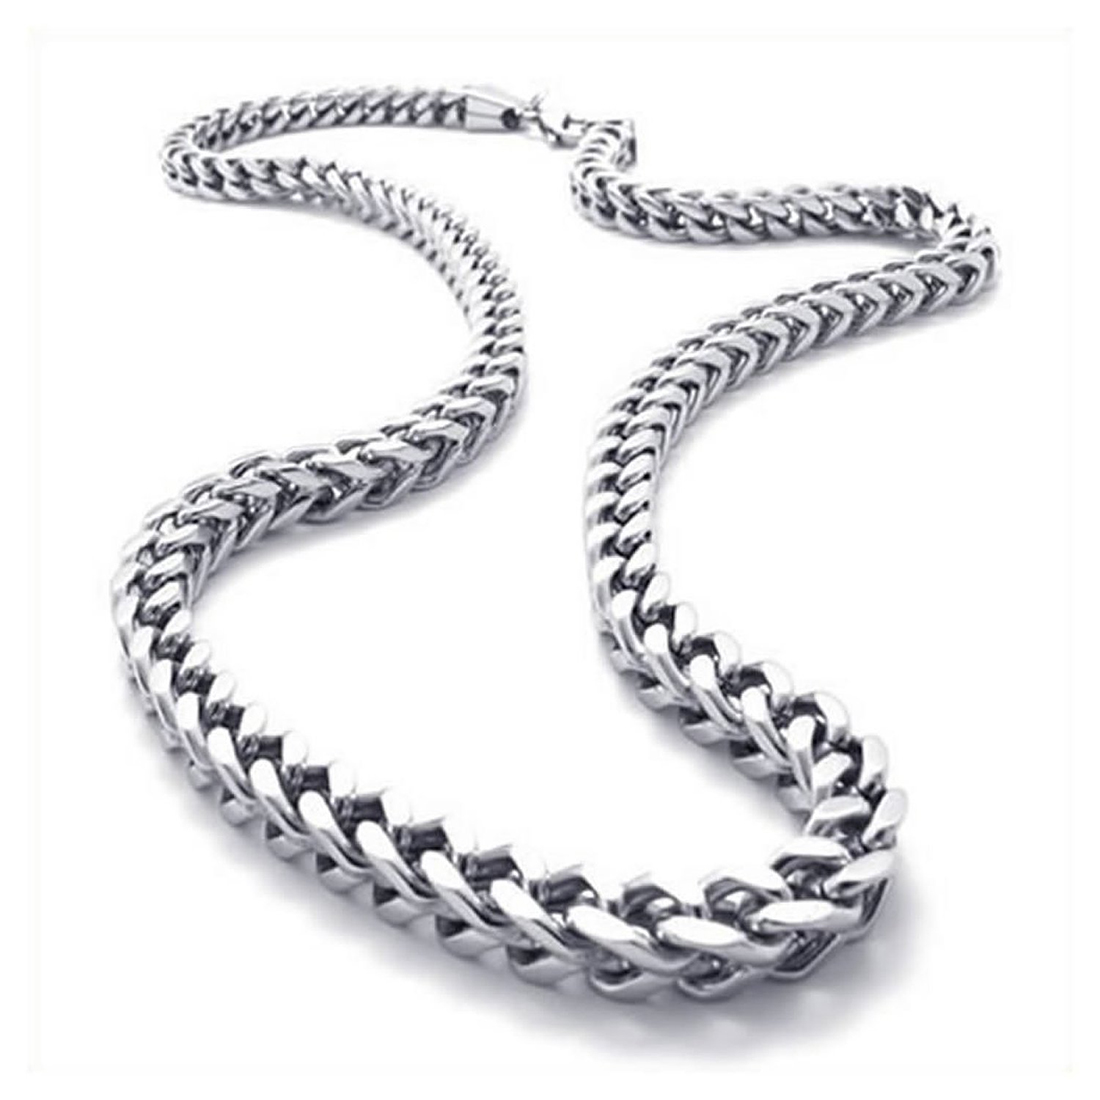 font b Jewelry b font Men s Necklace Stainless steel buckle chain necklace Silver 6